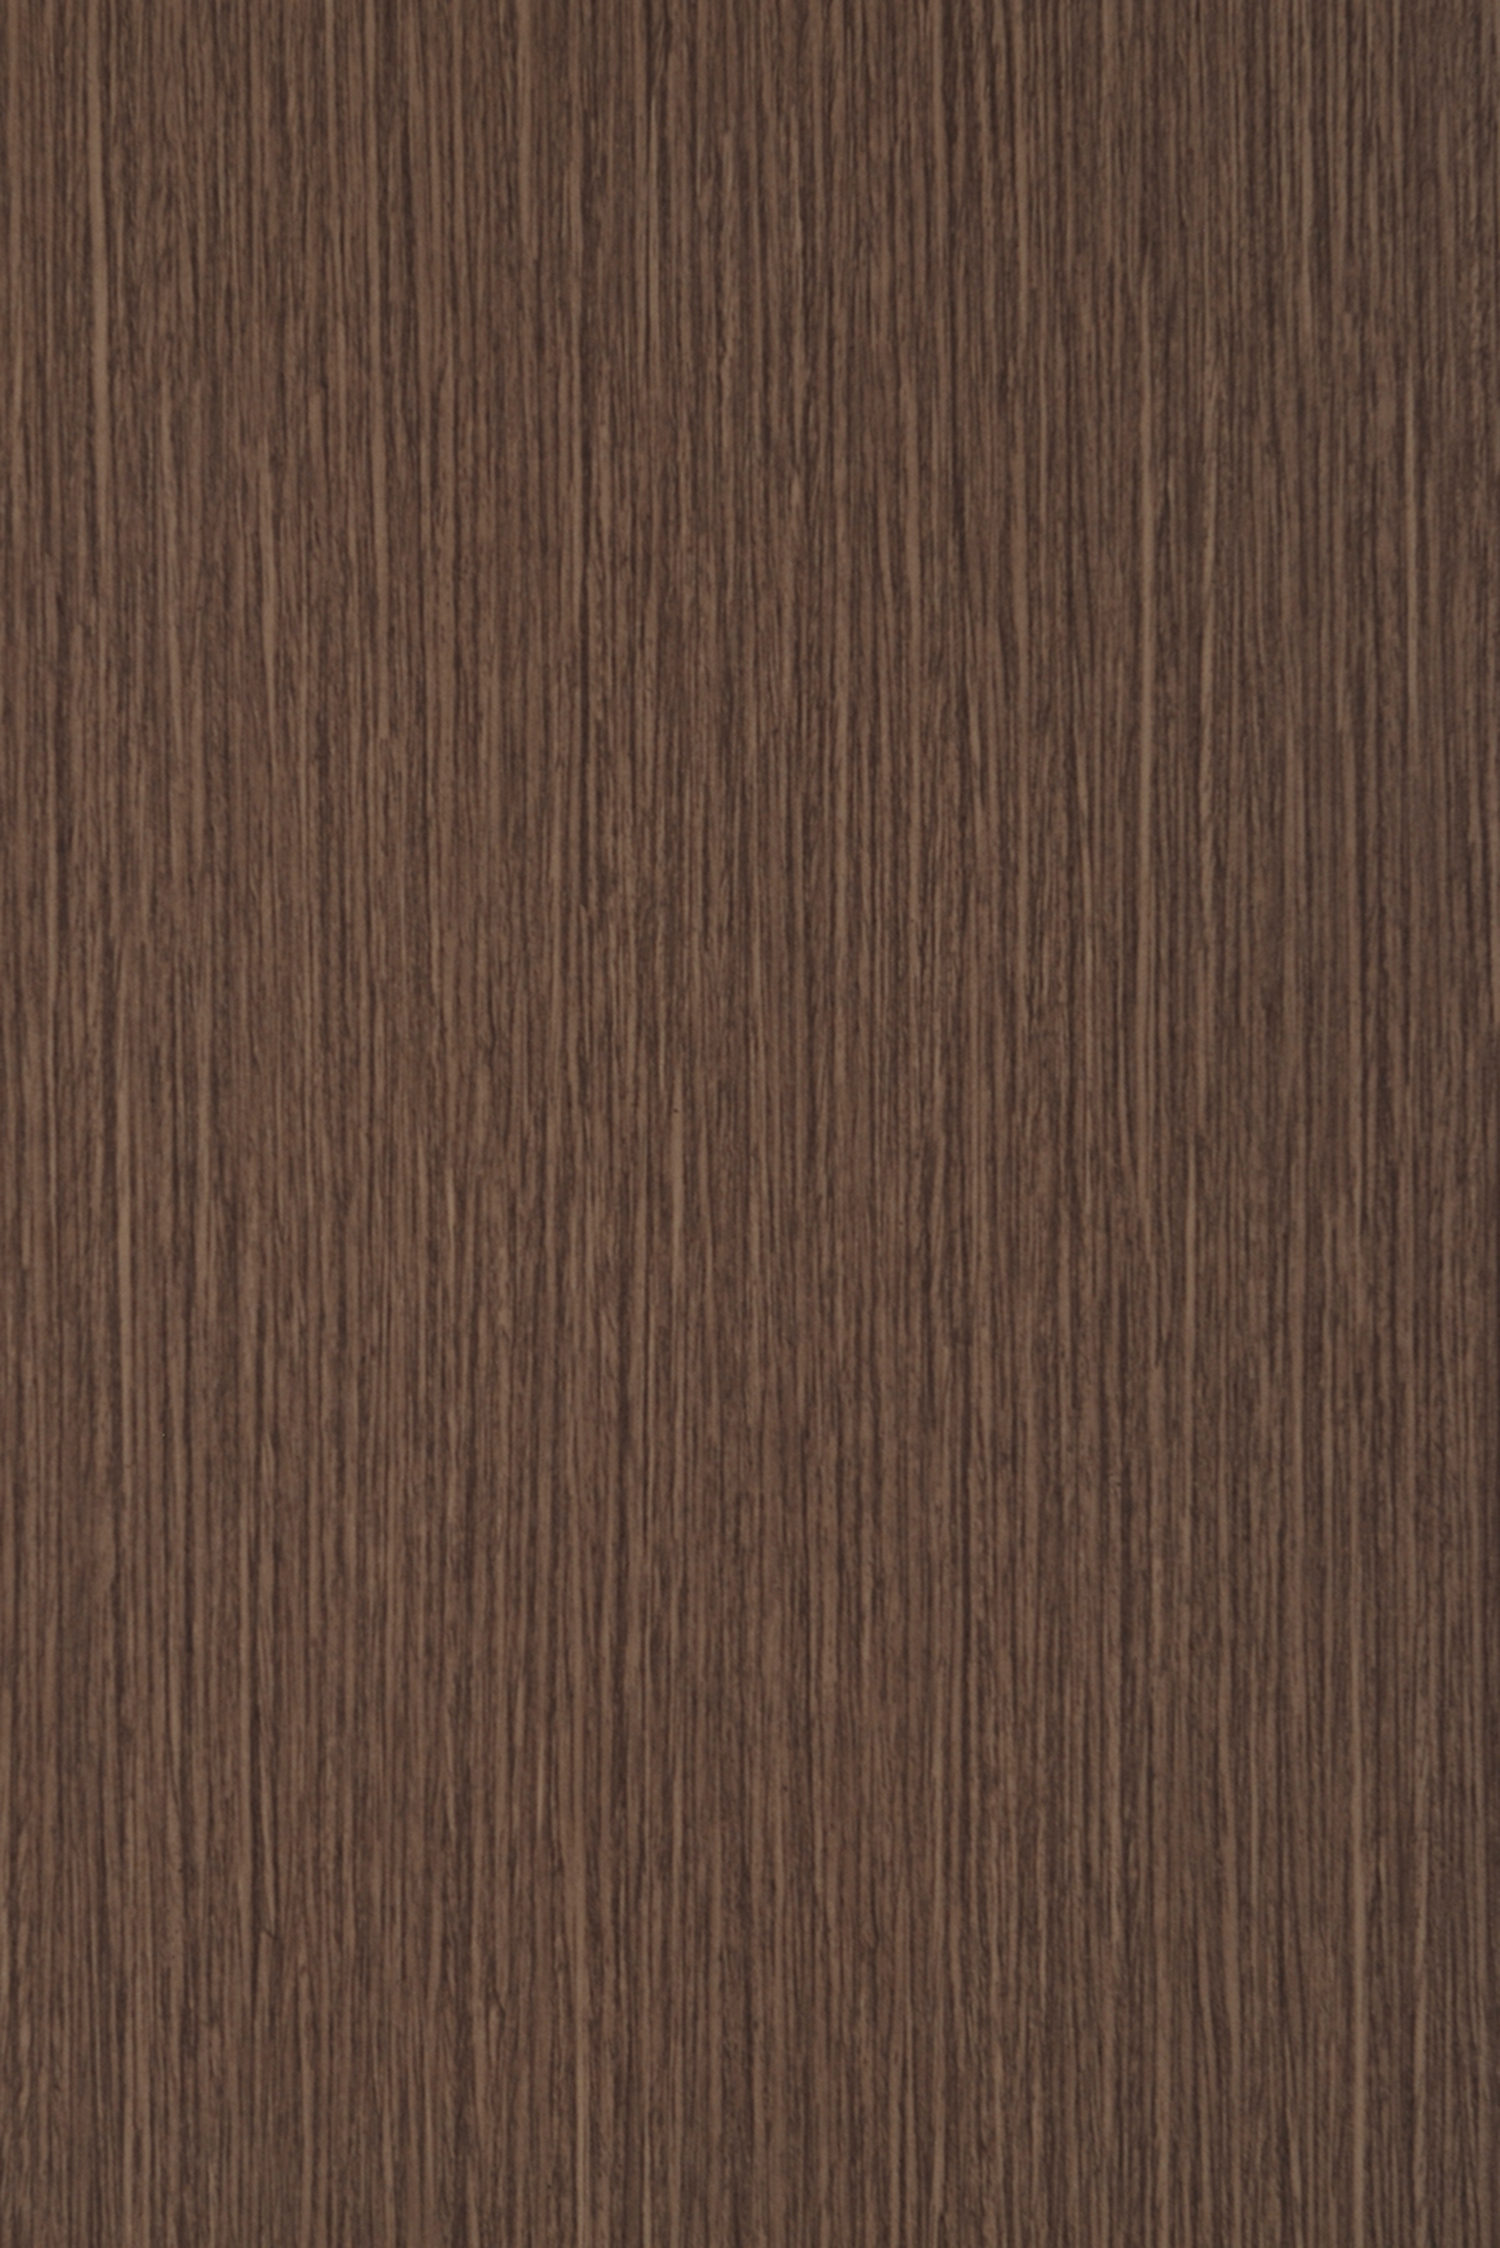 Oak Plywood Real Plywood Vray Material New English Oak